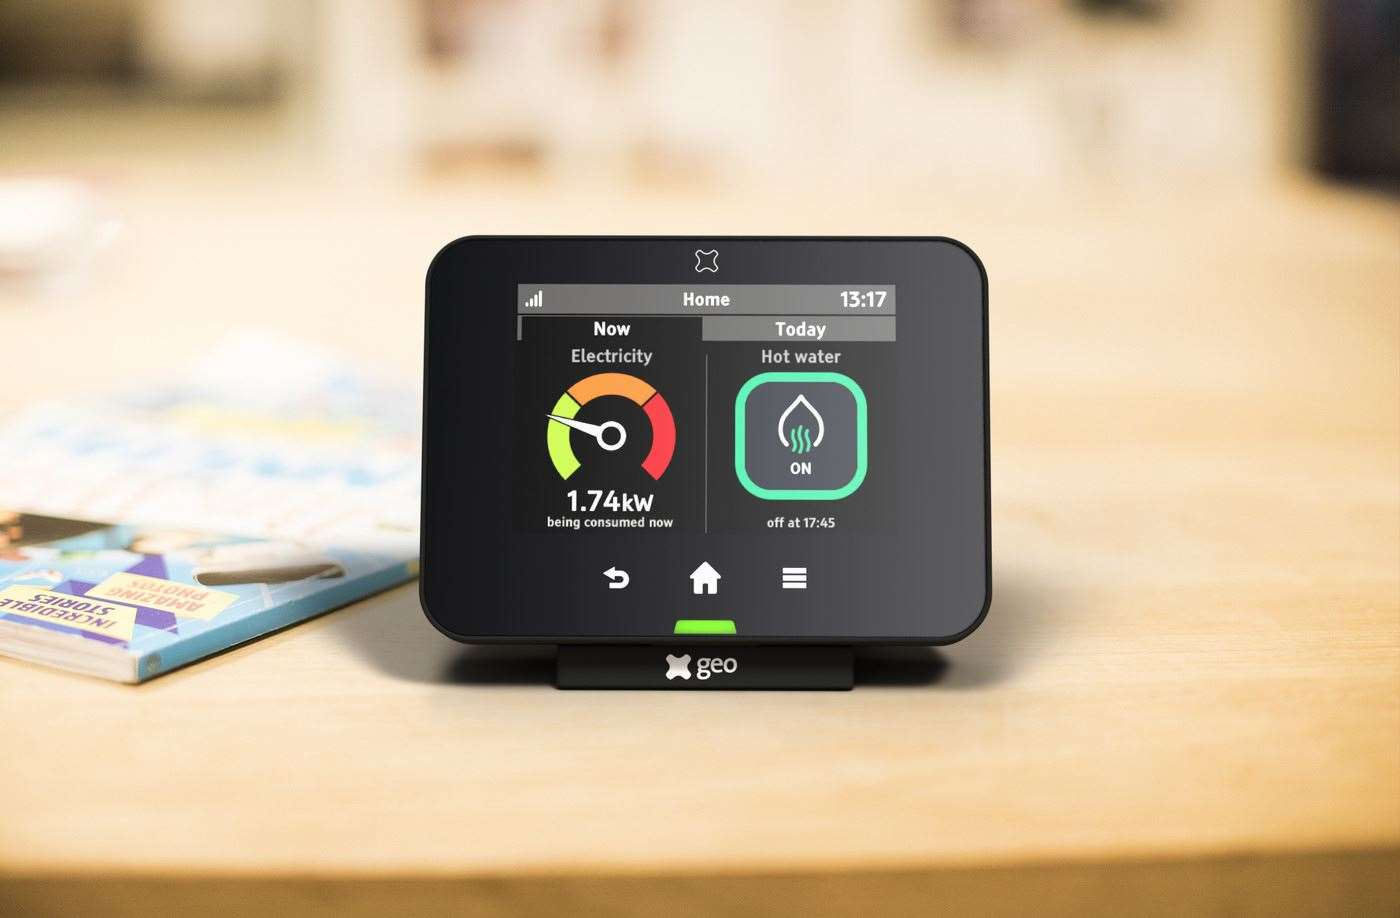 geo's smart metering system has extra intelligence with ONZO's services